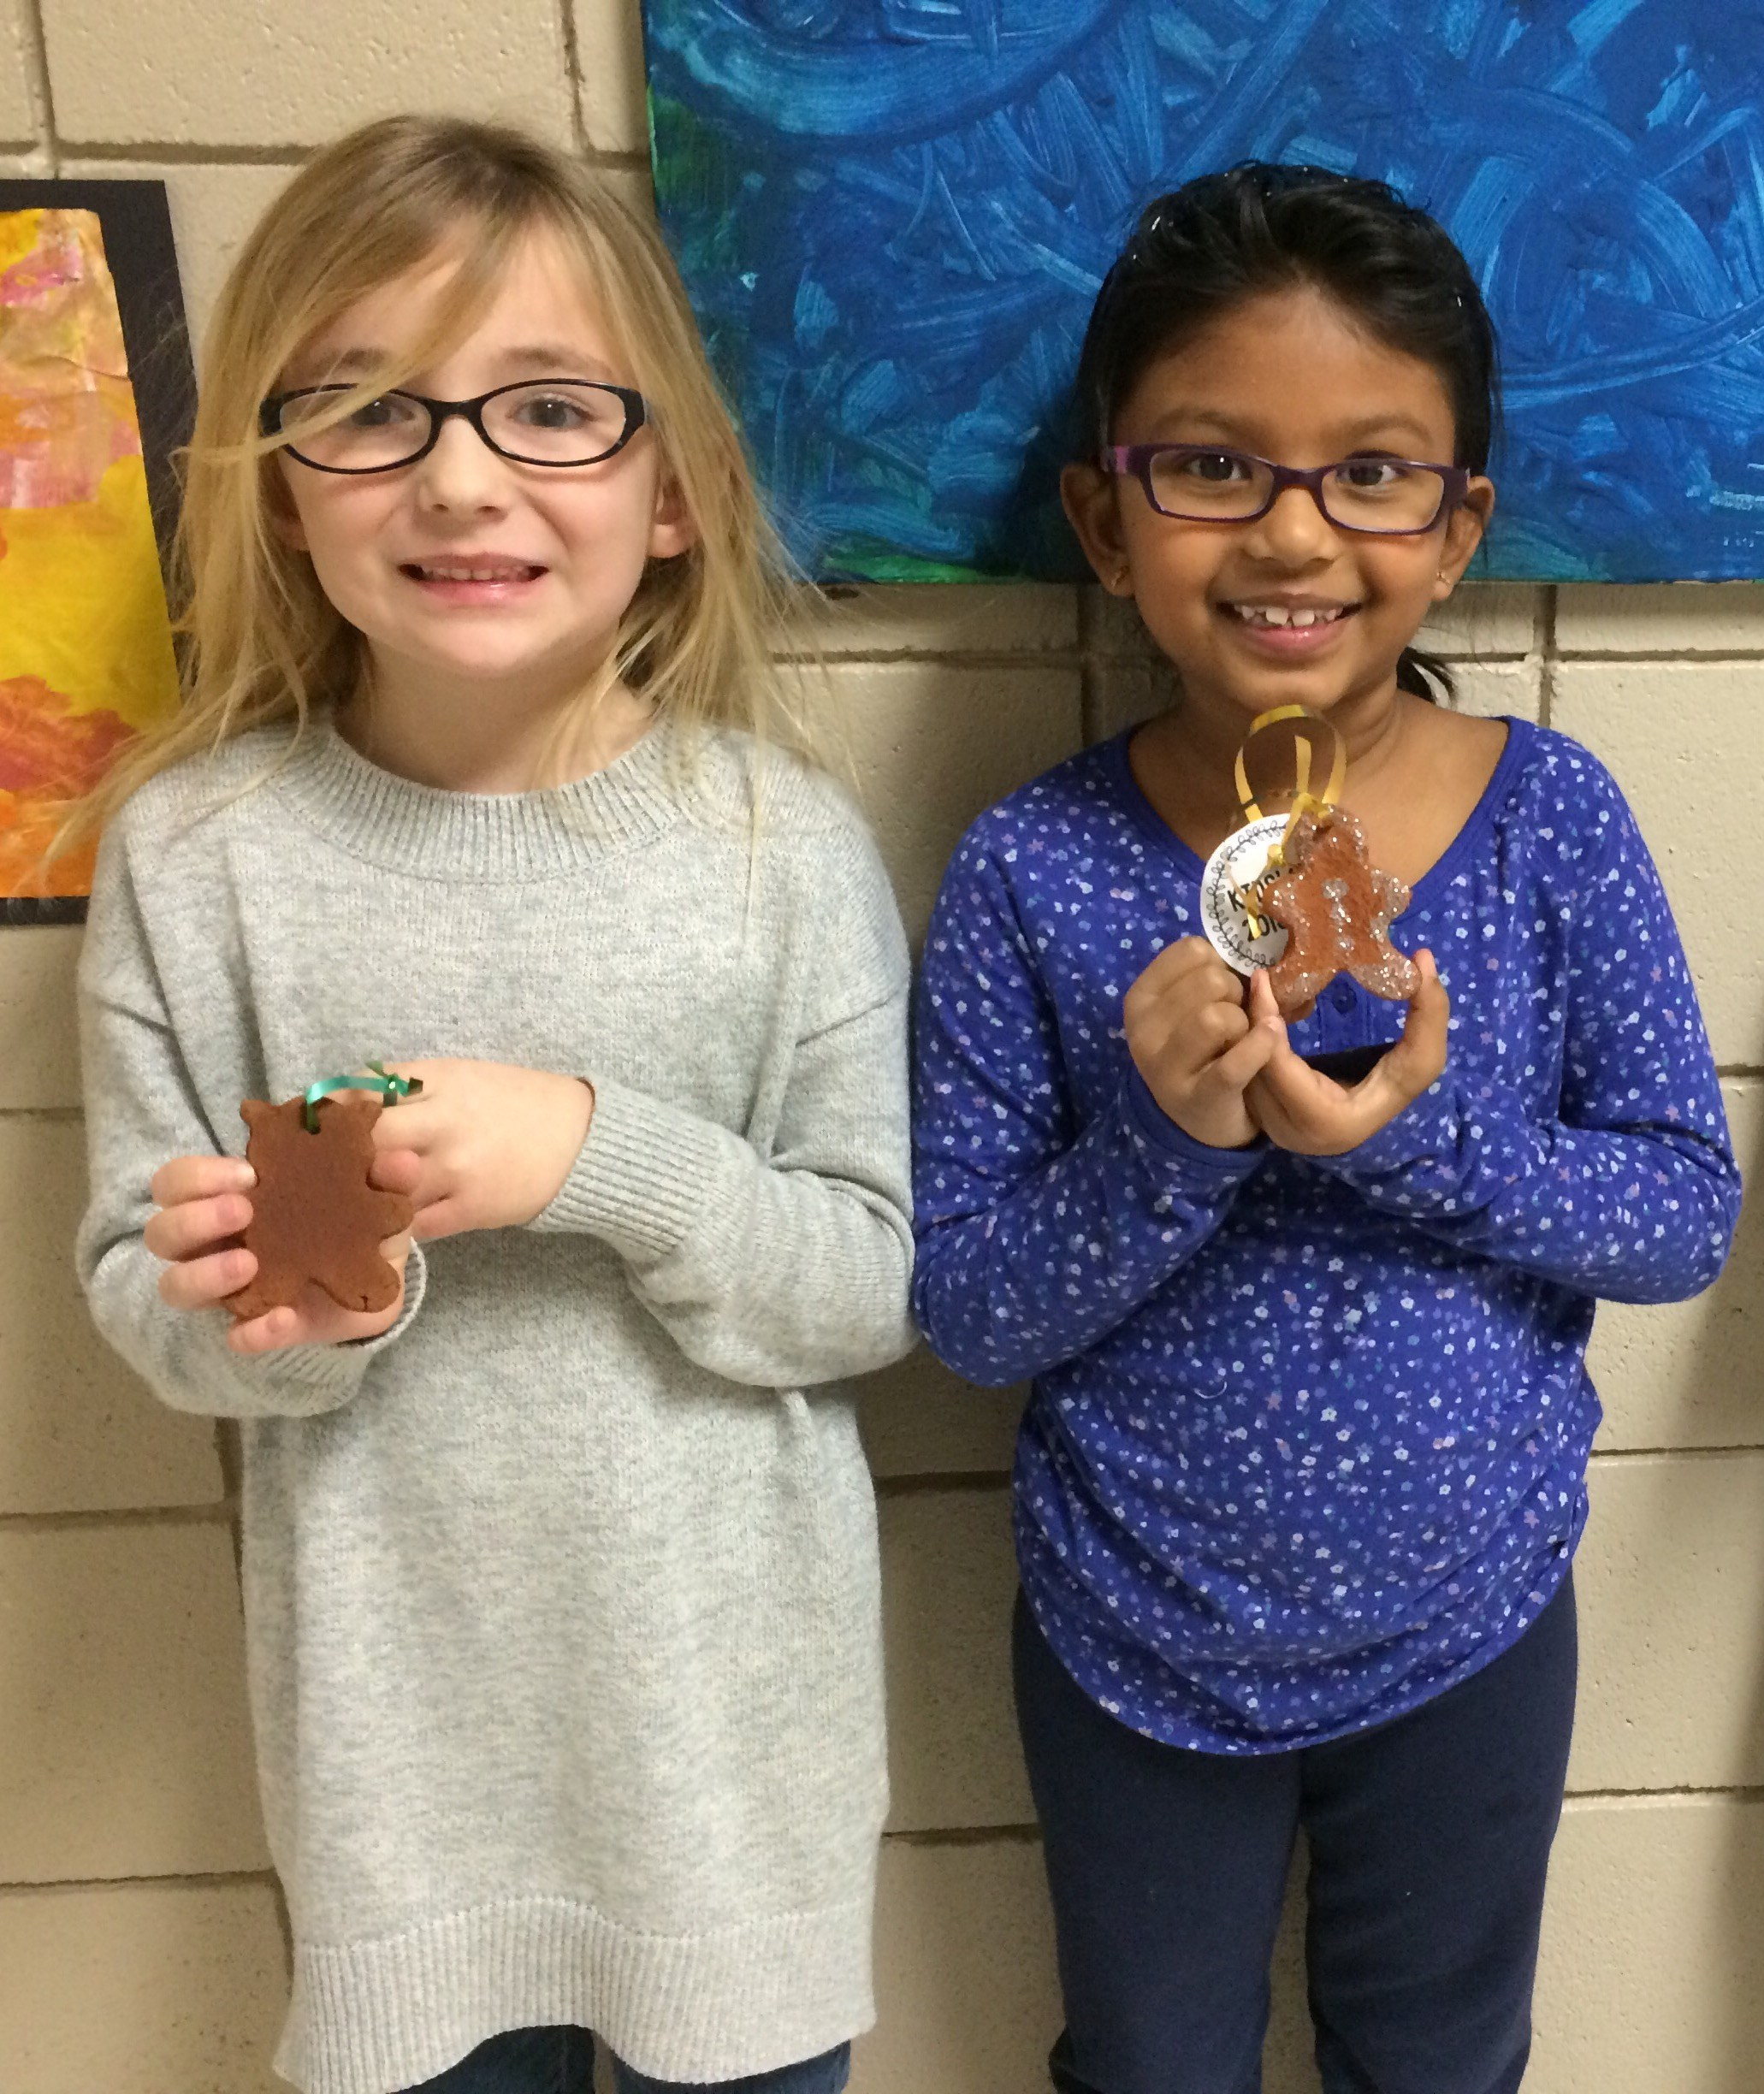 Showing their hand-made ornaments.